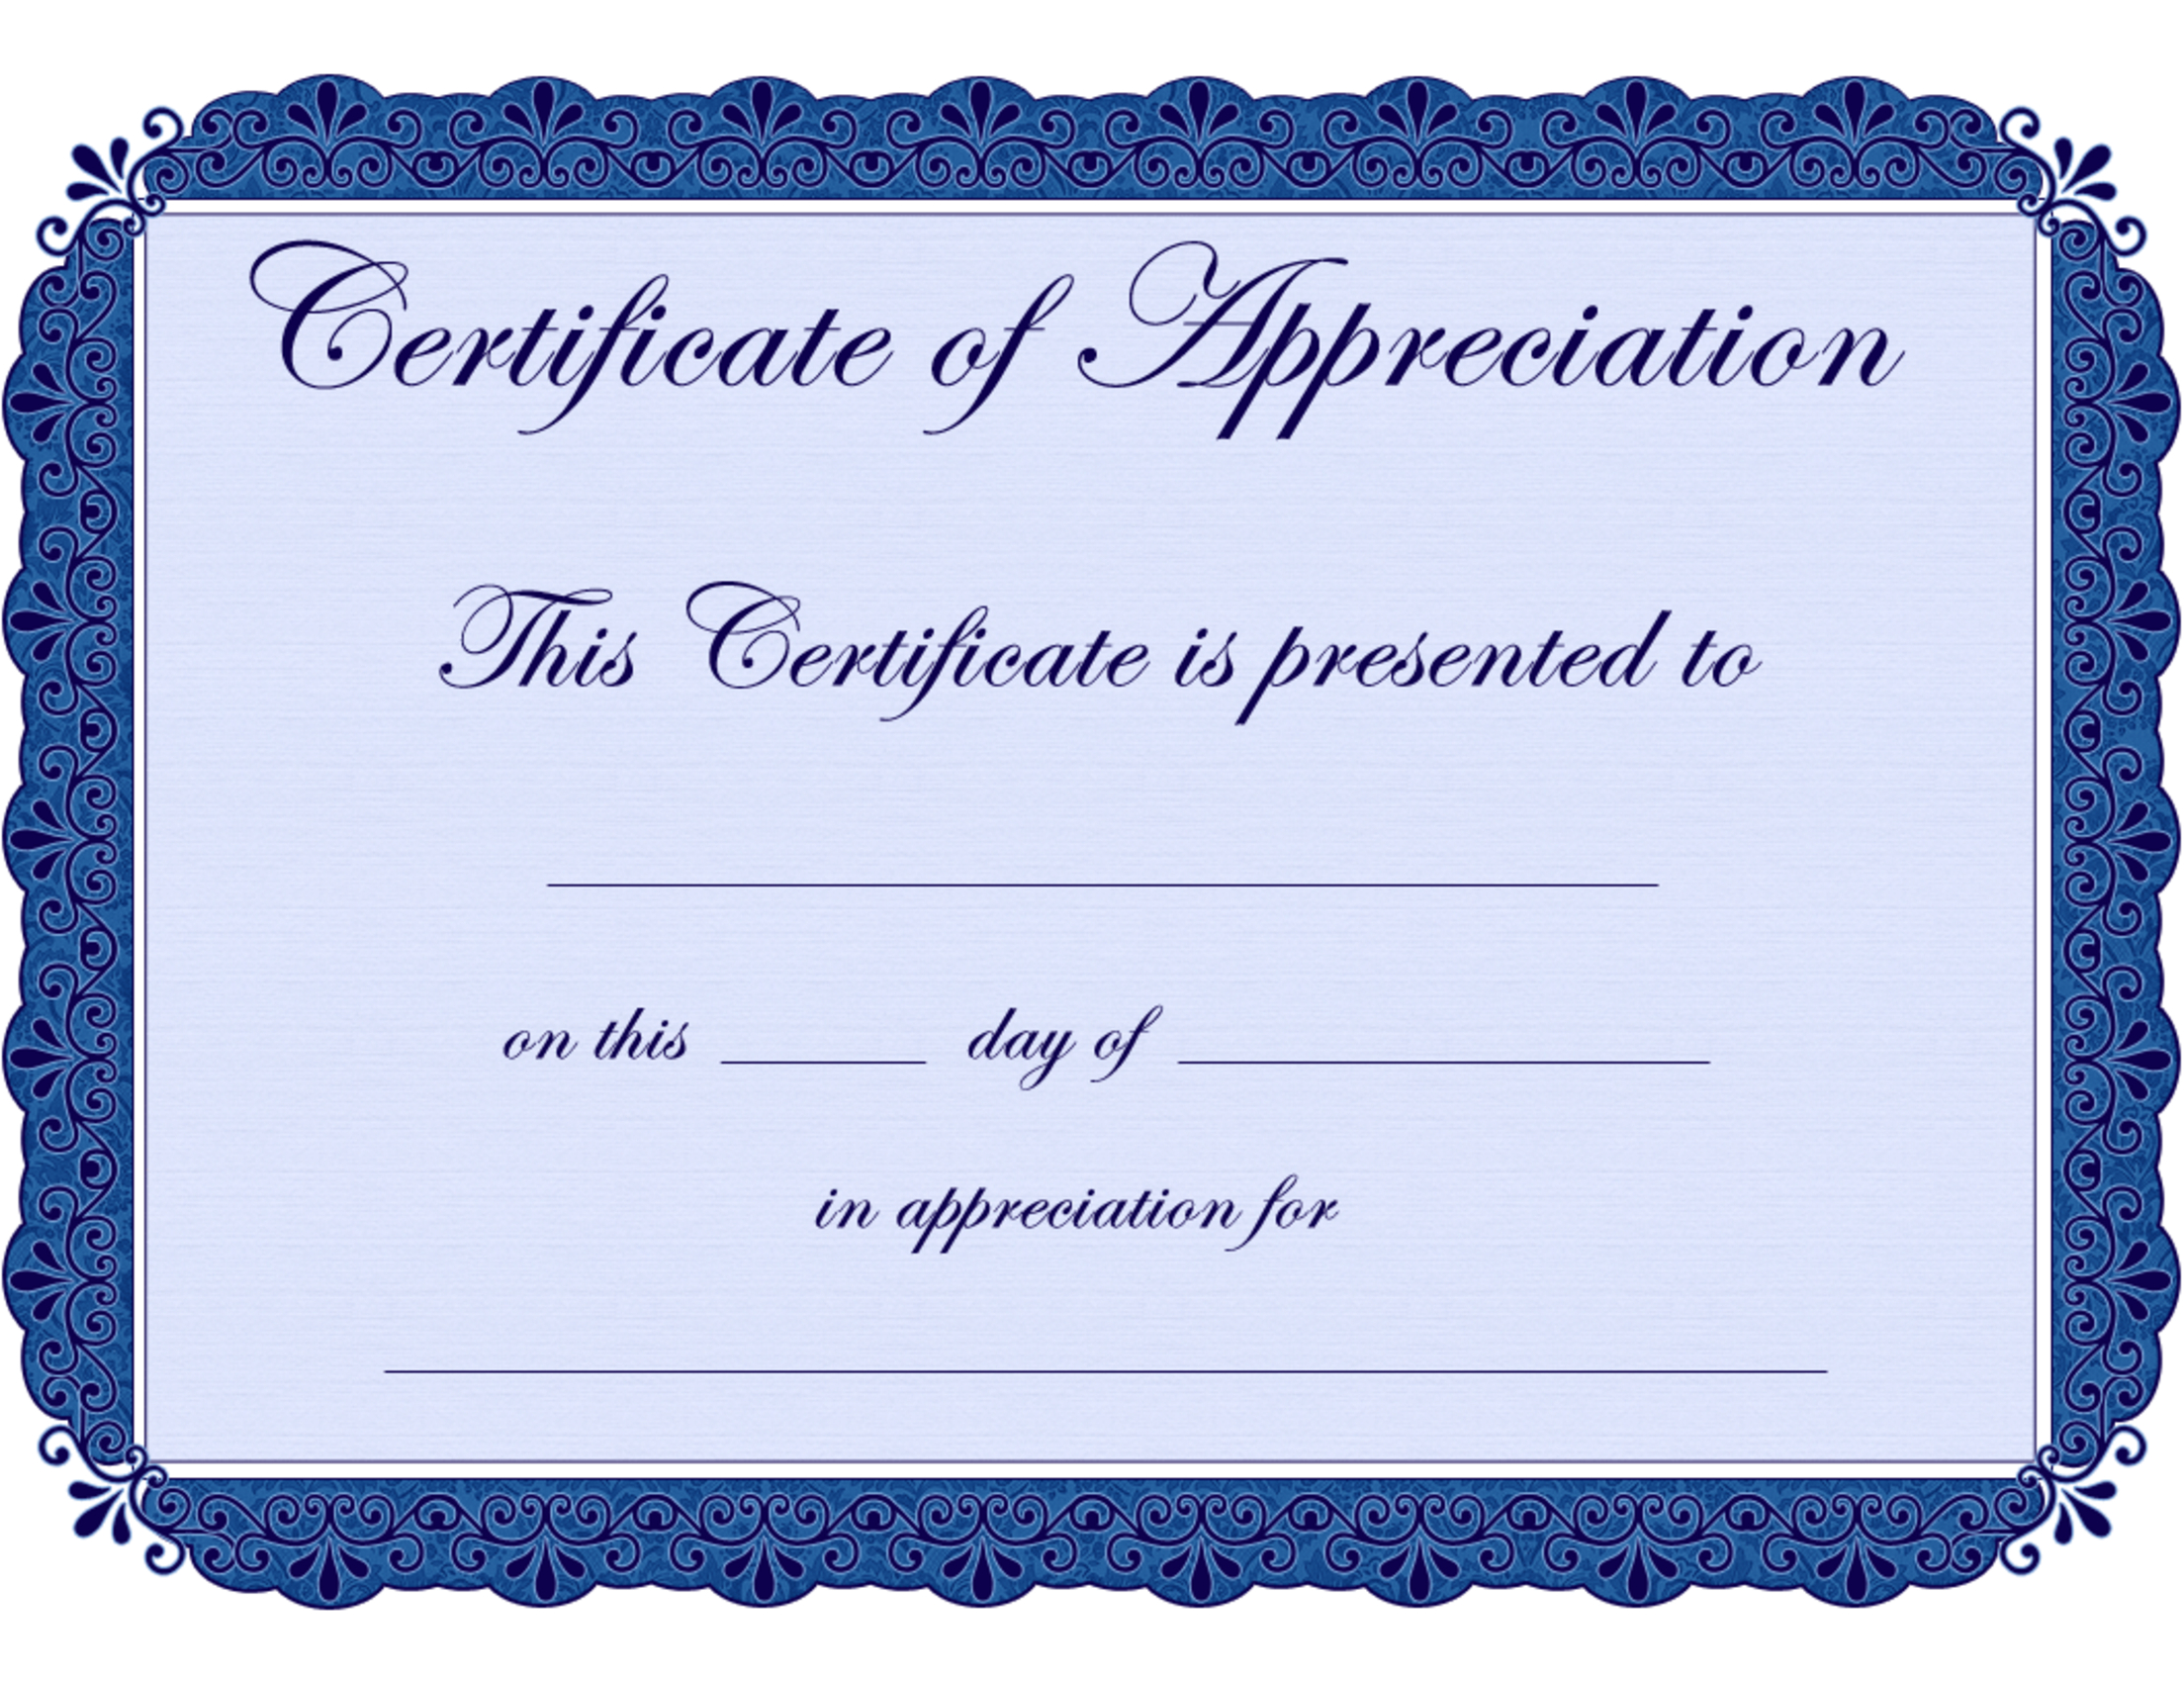 Free Printable Certificates Certificate Of Appreciation Certificate - Free Printable Certificates For Students